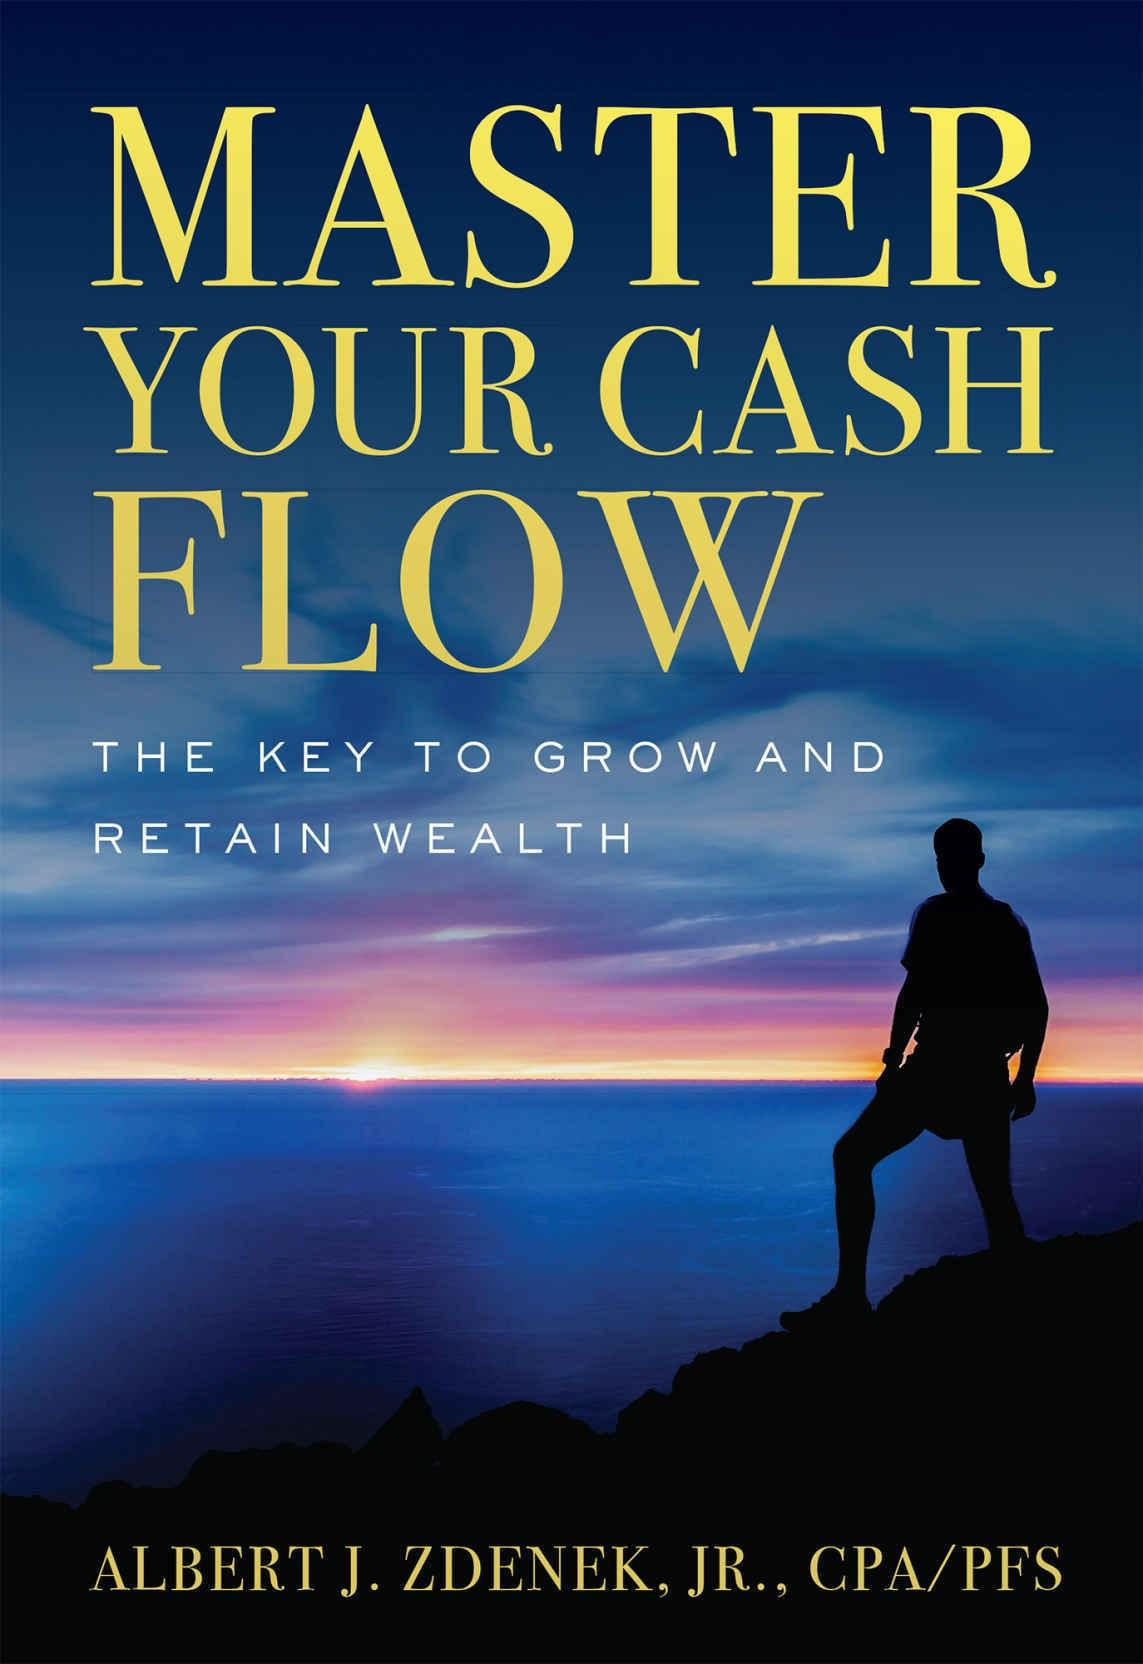 2018-04-08  Cash Flow Controls Your Finances with Albert J Zdenek & Ed Fulbright On Mastering Your Money Radio  Thumbnail